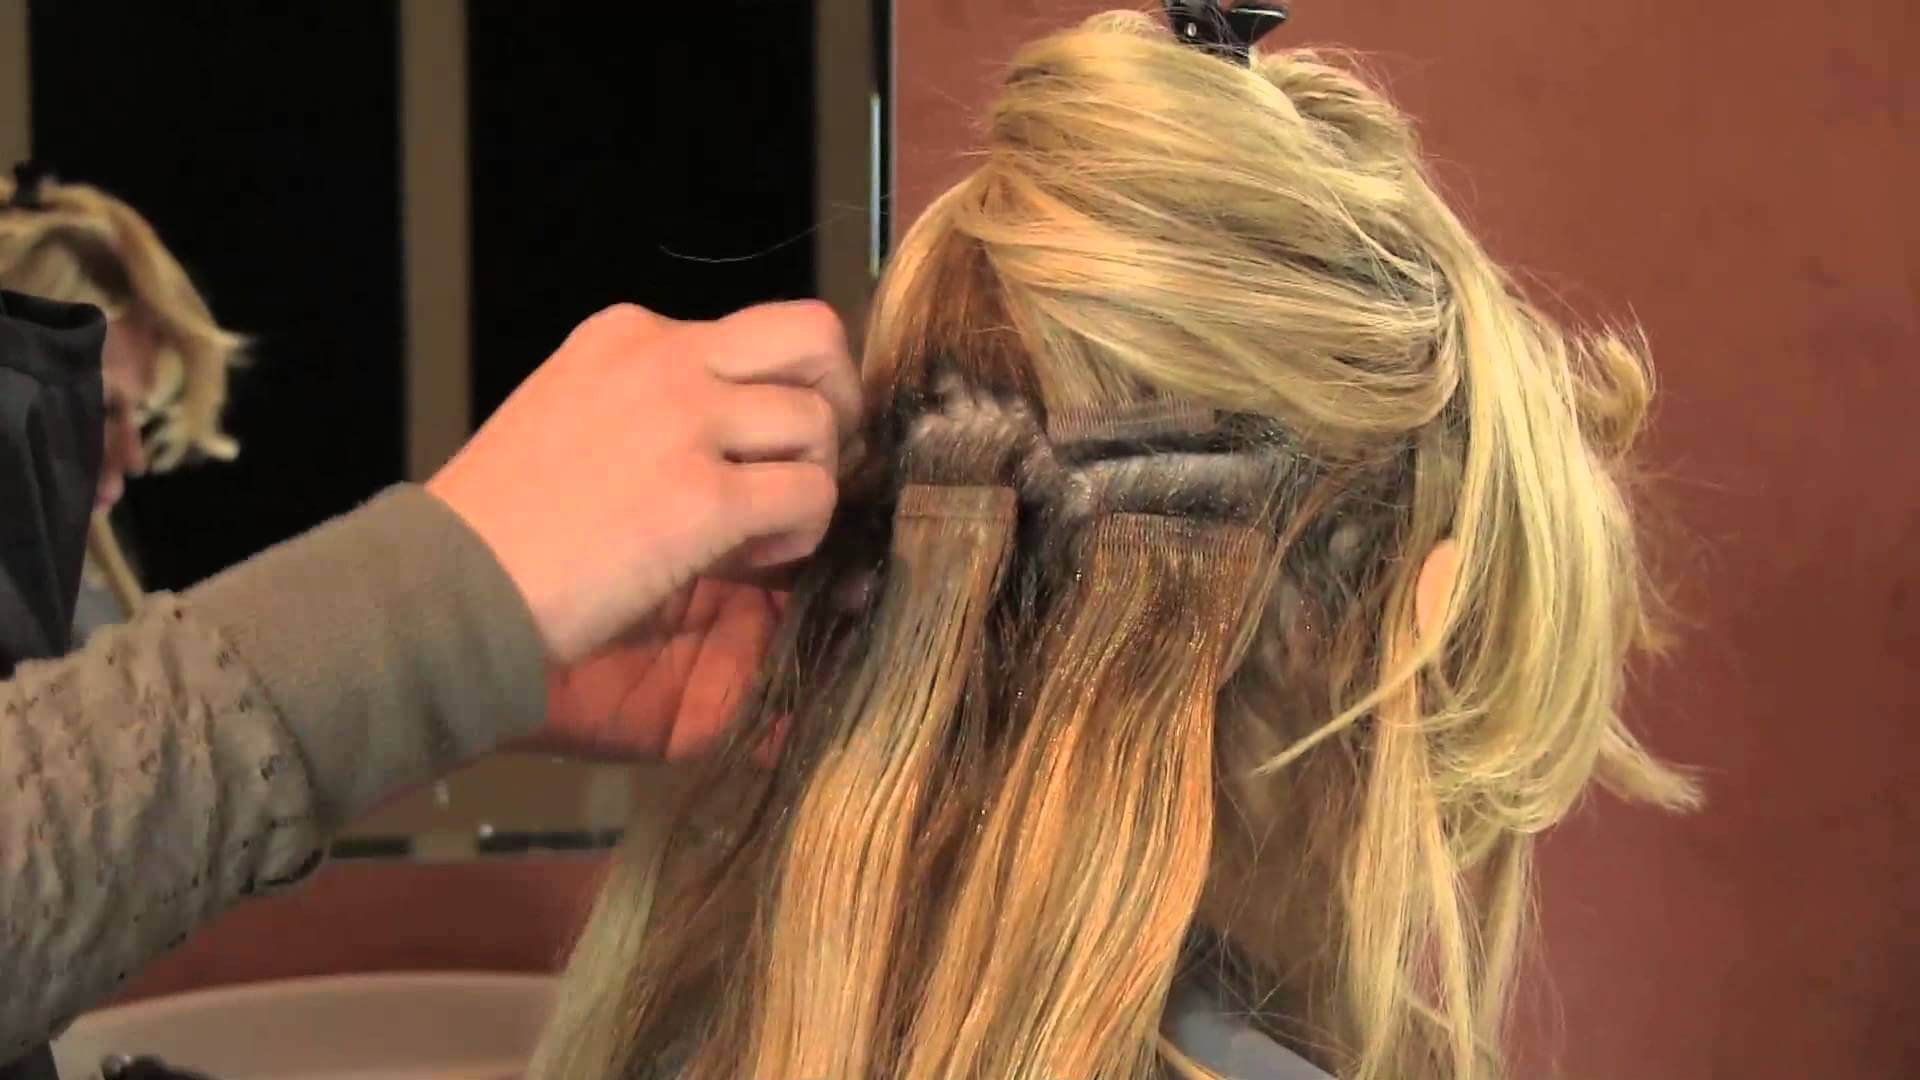 Hair weave Removal by rebehair expert